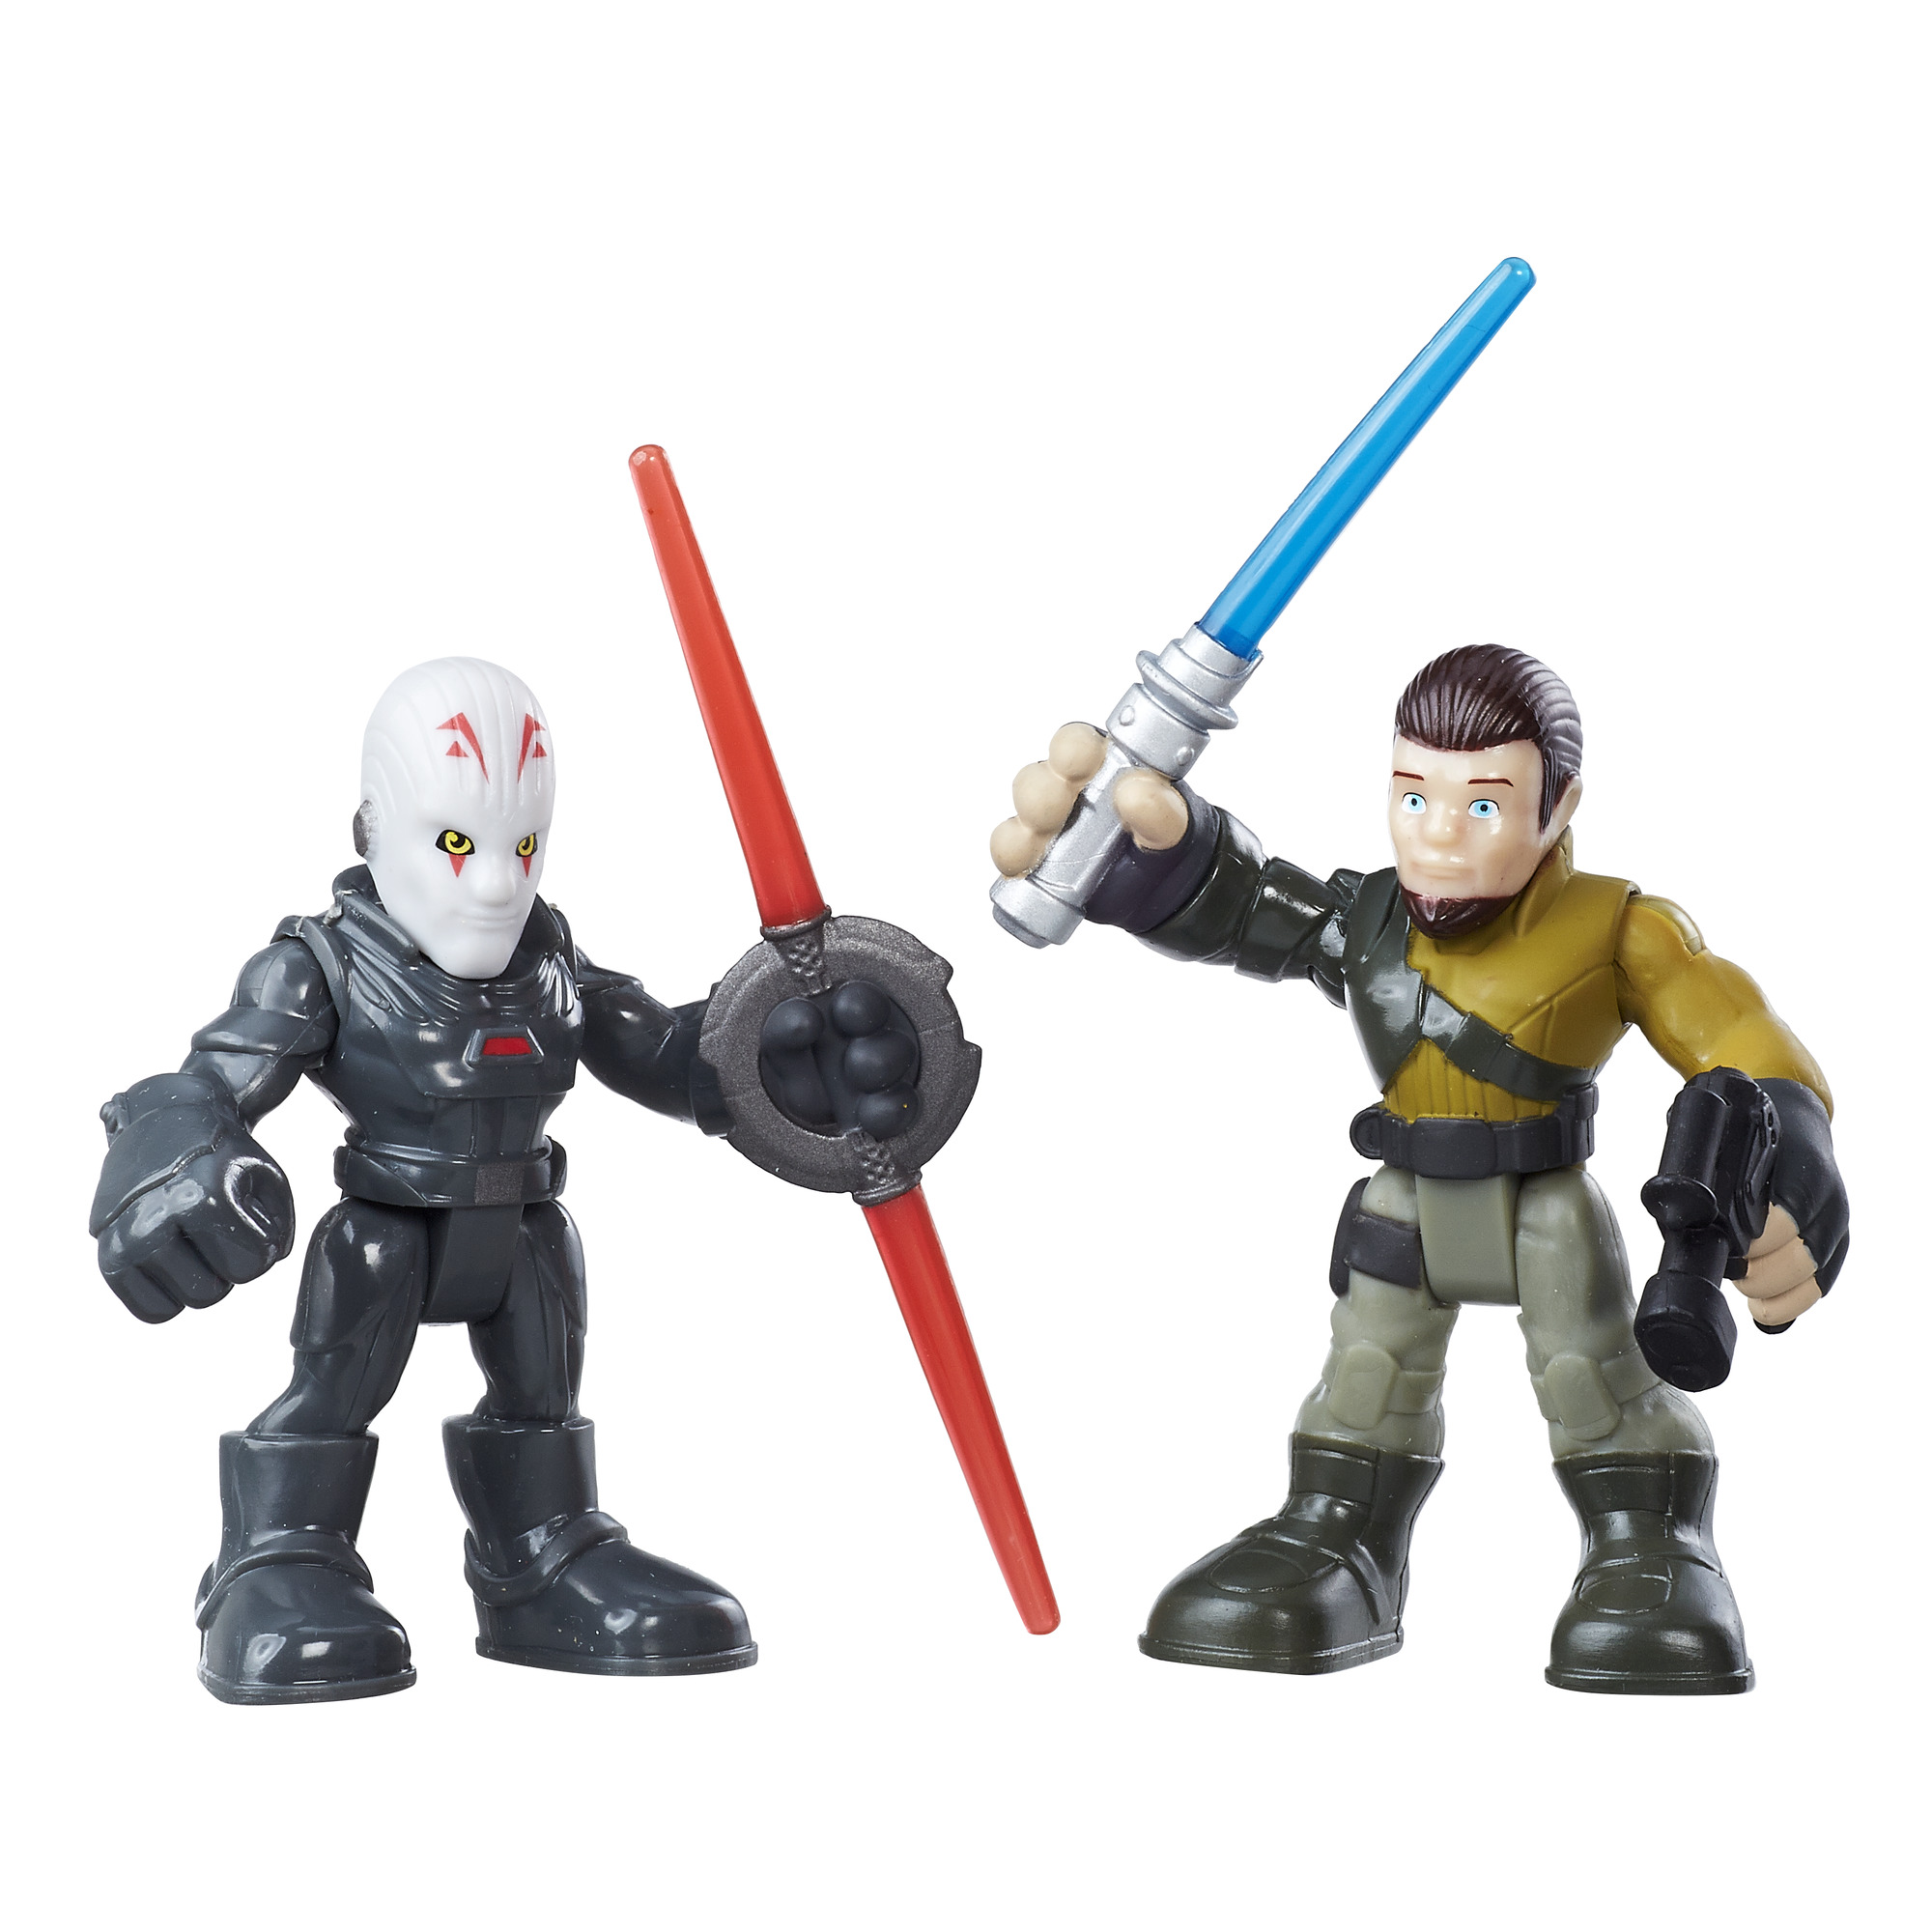 Star Wars Galactic Heroes 2.5 inch Kanan Jarrus and The Inquisitor PartNumber: 004W006715463008P